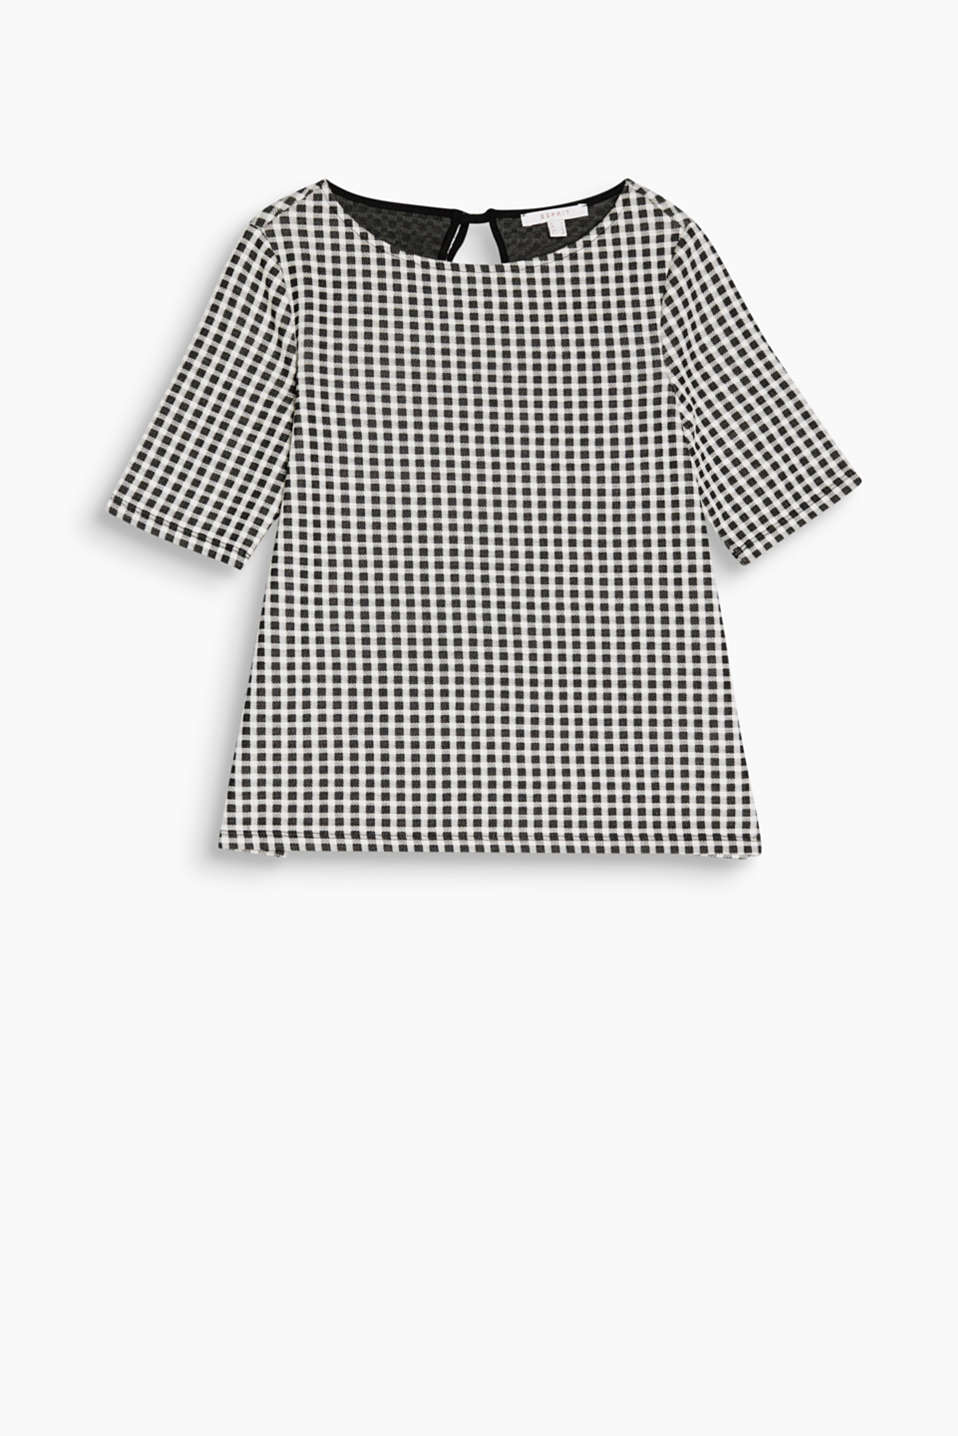 Heavy jersey check top in a fashionable A-line design with a tulle bow on the back